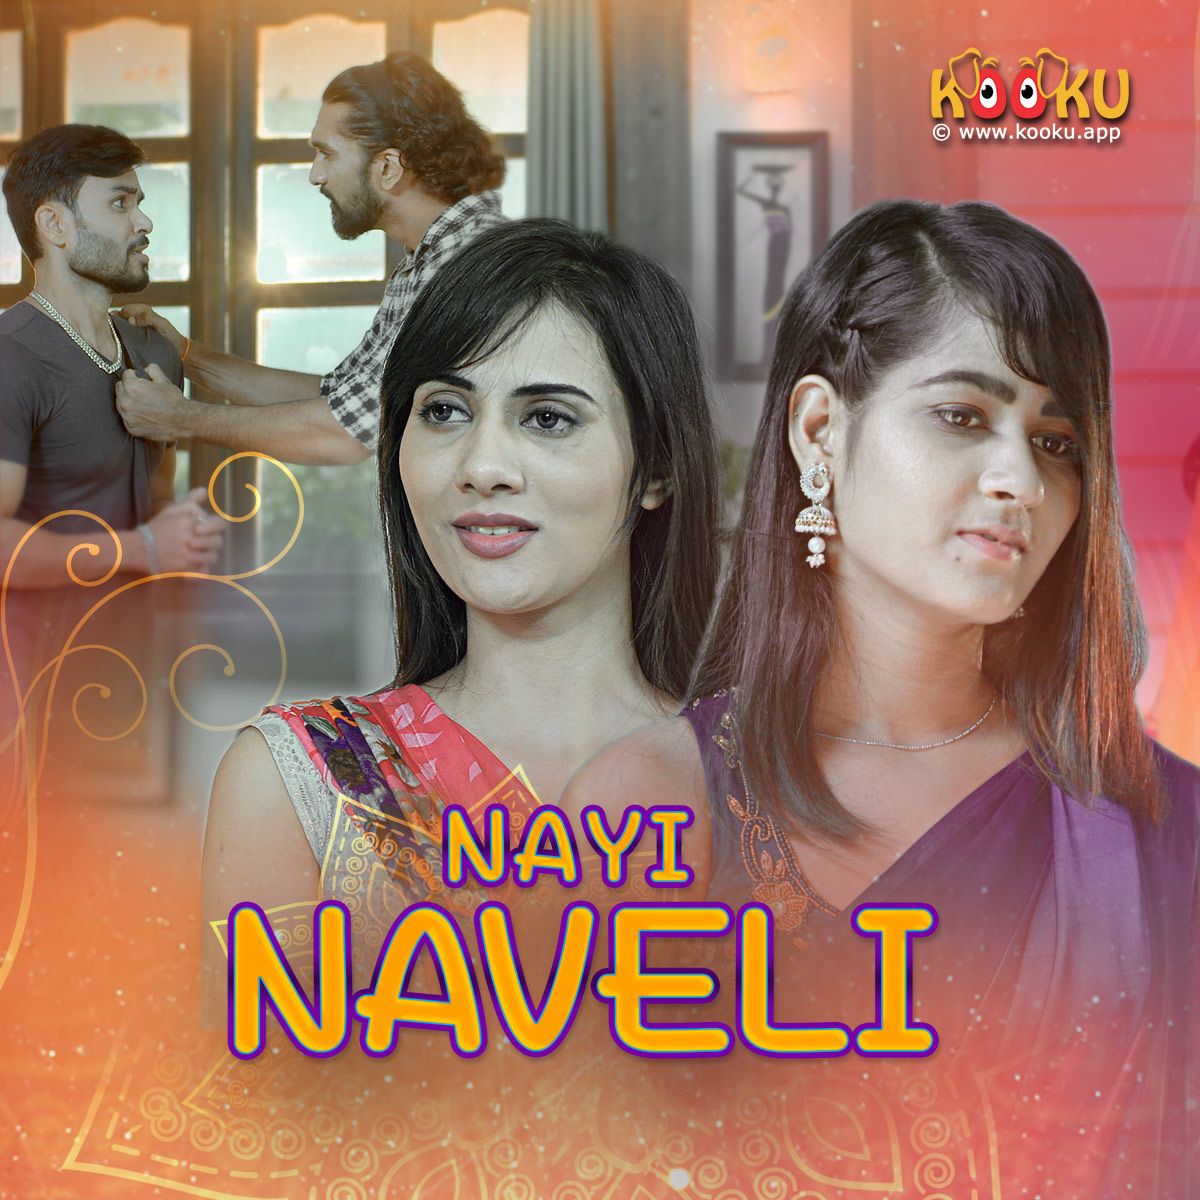 18+ Nayi Naveli 2021 S01 Hindi Complete Kooku App Original Web Series 720p HDRip 200MB x264 AAC